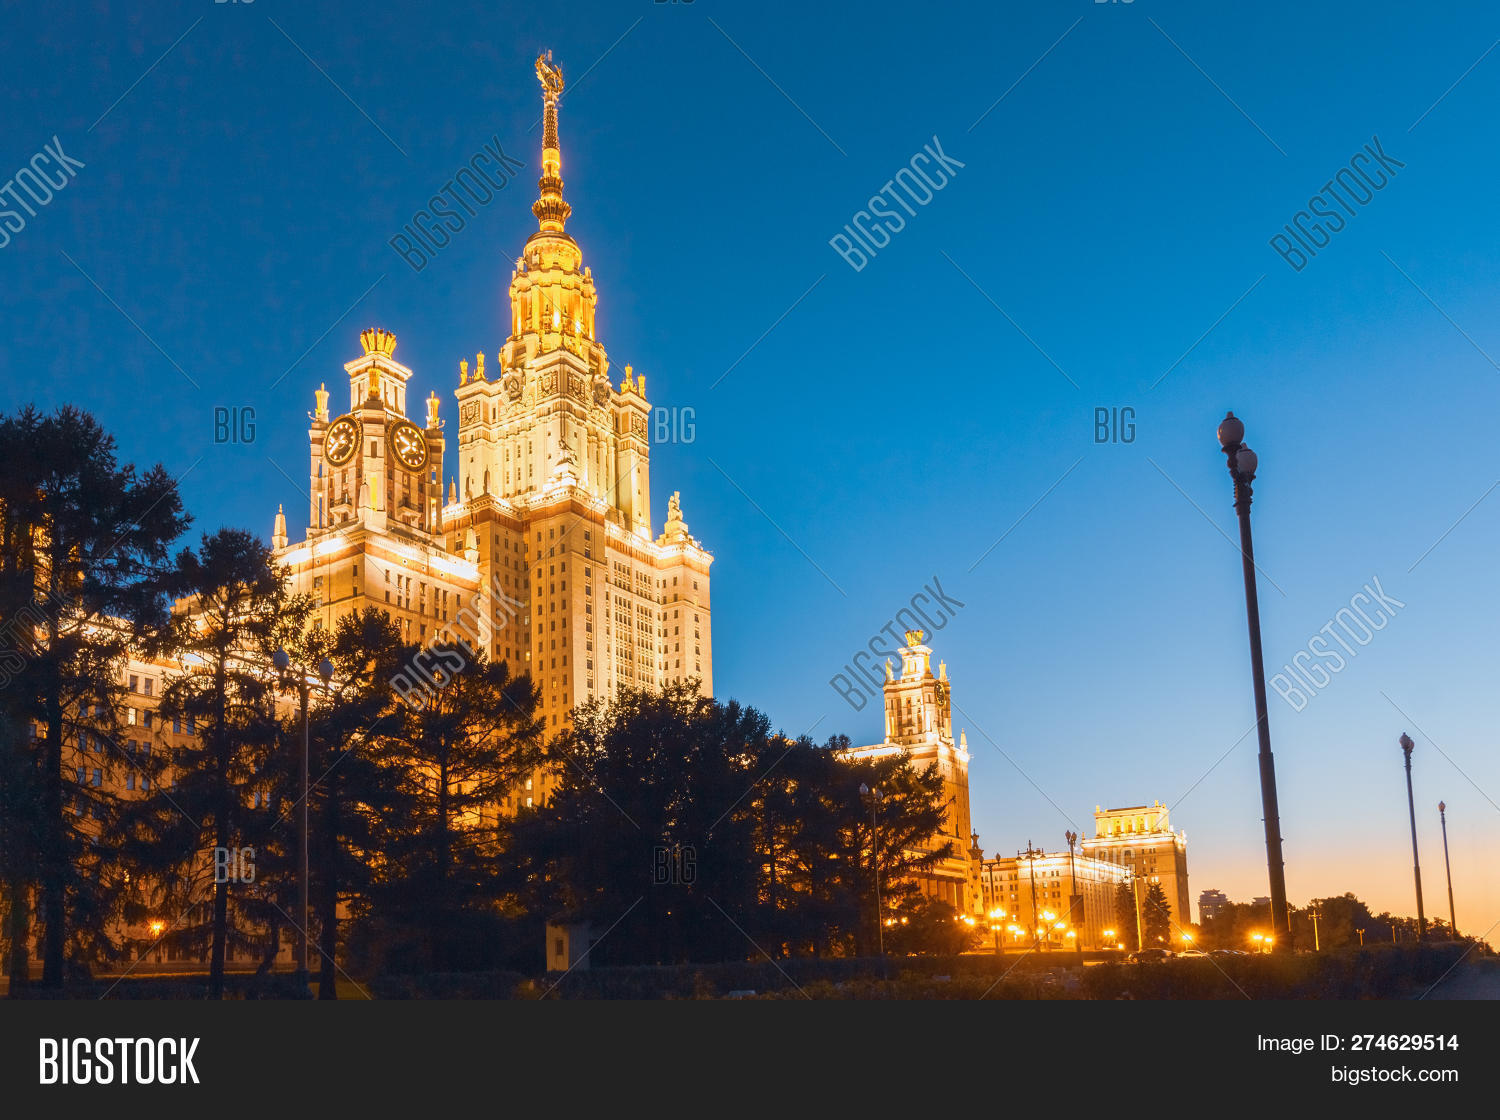 Moscow,Russian,Stalin,USSR,capital,cityscape,clear,college,darkness,development,dusk,education,empire,entrance,evening,exterior,facade,higher,highest,highrise,hours,illumination,institute,knowledge,landmark,leading,learning,light,lomonosov,monument,msu,night,nobody,old,outdoor,roof,sight,sky,skyscraper,spike,spire,state,steeple,style,symbol,tall,tower,training,university